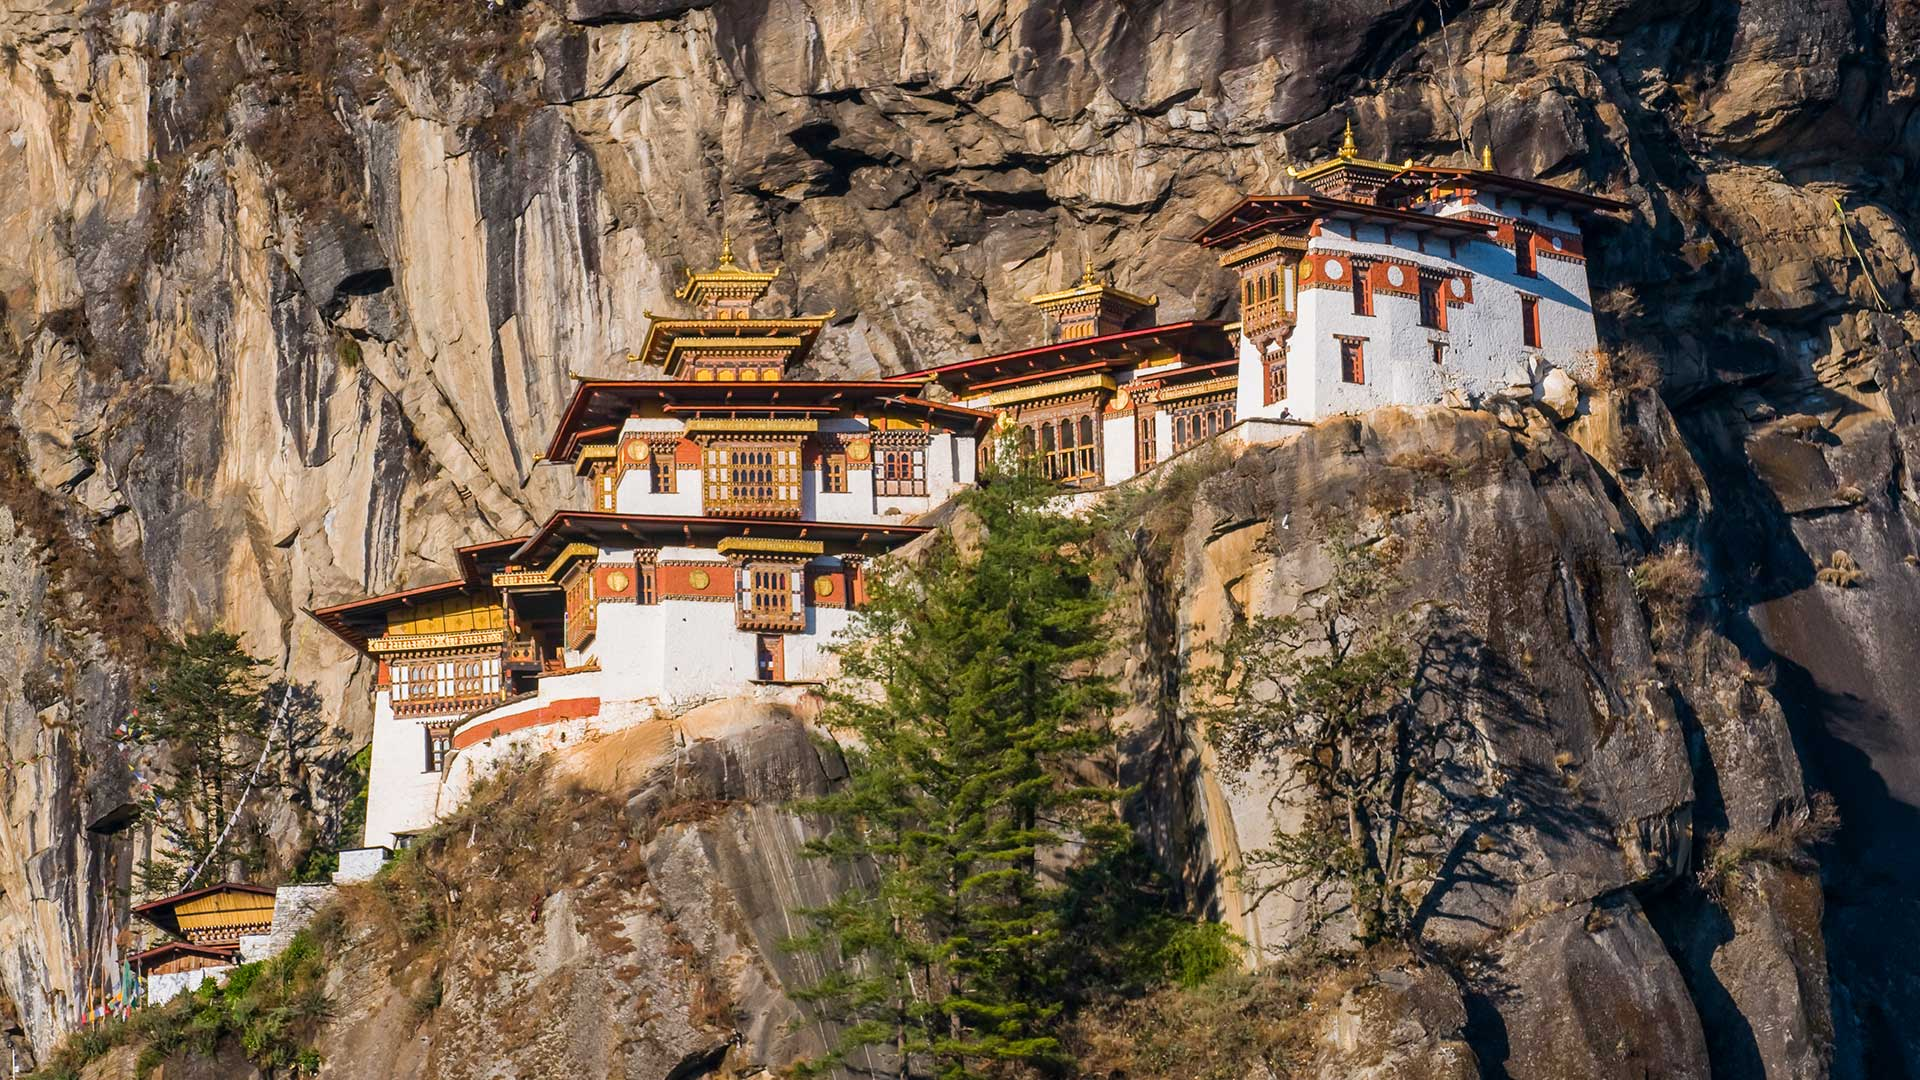 Tiger's Nest monastery, hanging off the cliffs outside Paro, Bhutan